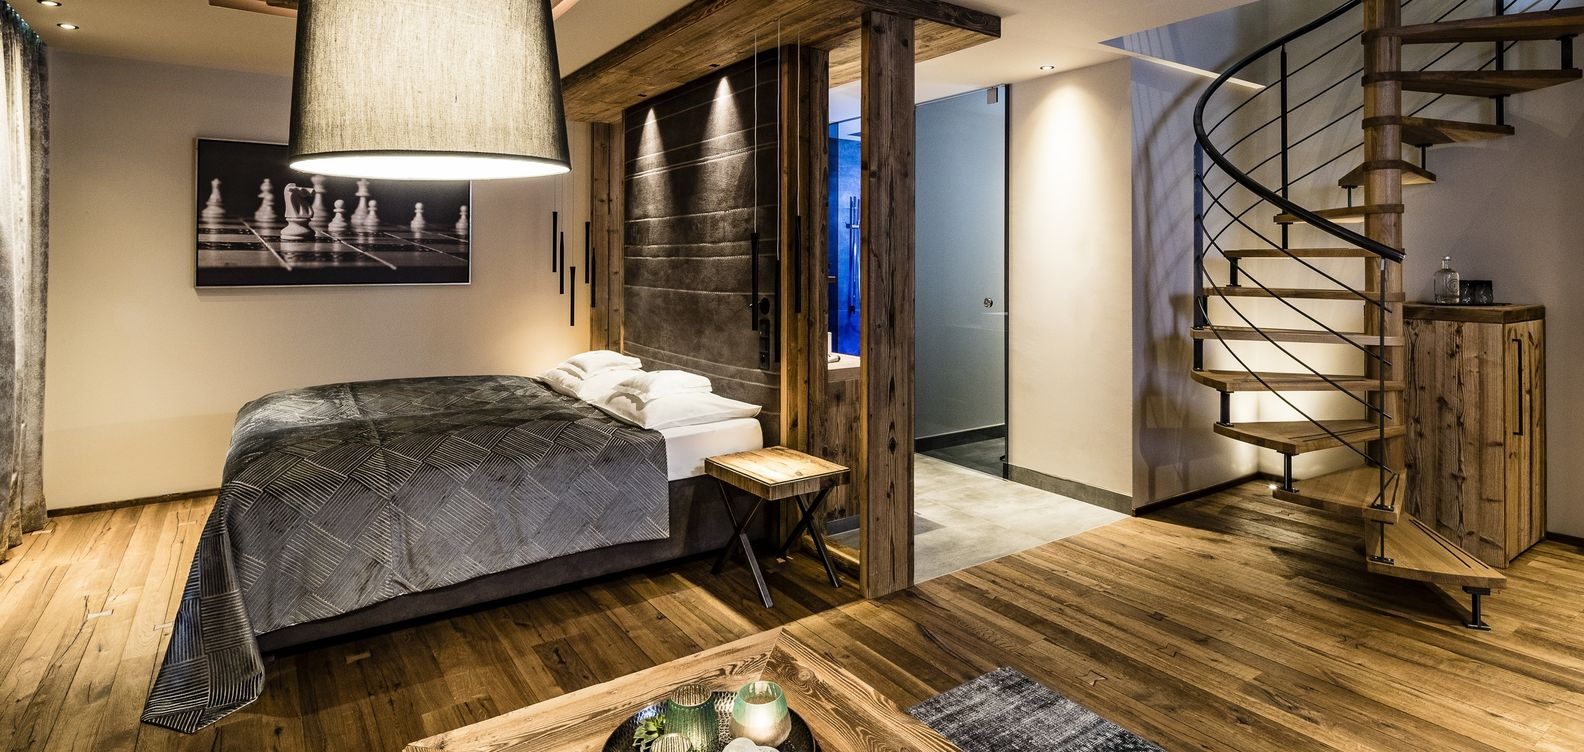 Suite Mountain Lodge at Hotel Mesnerwirt in South Tyrol.